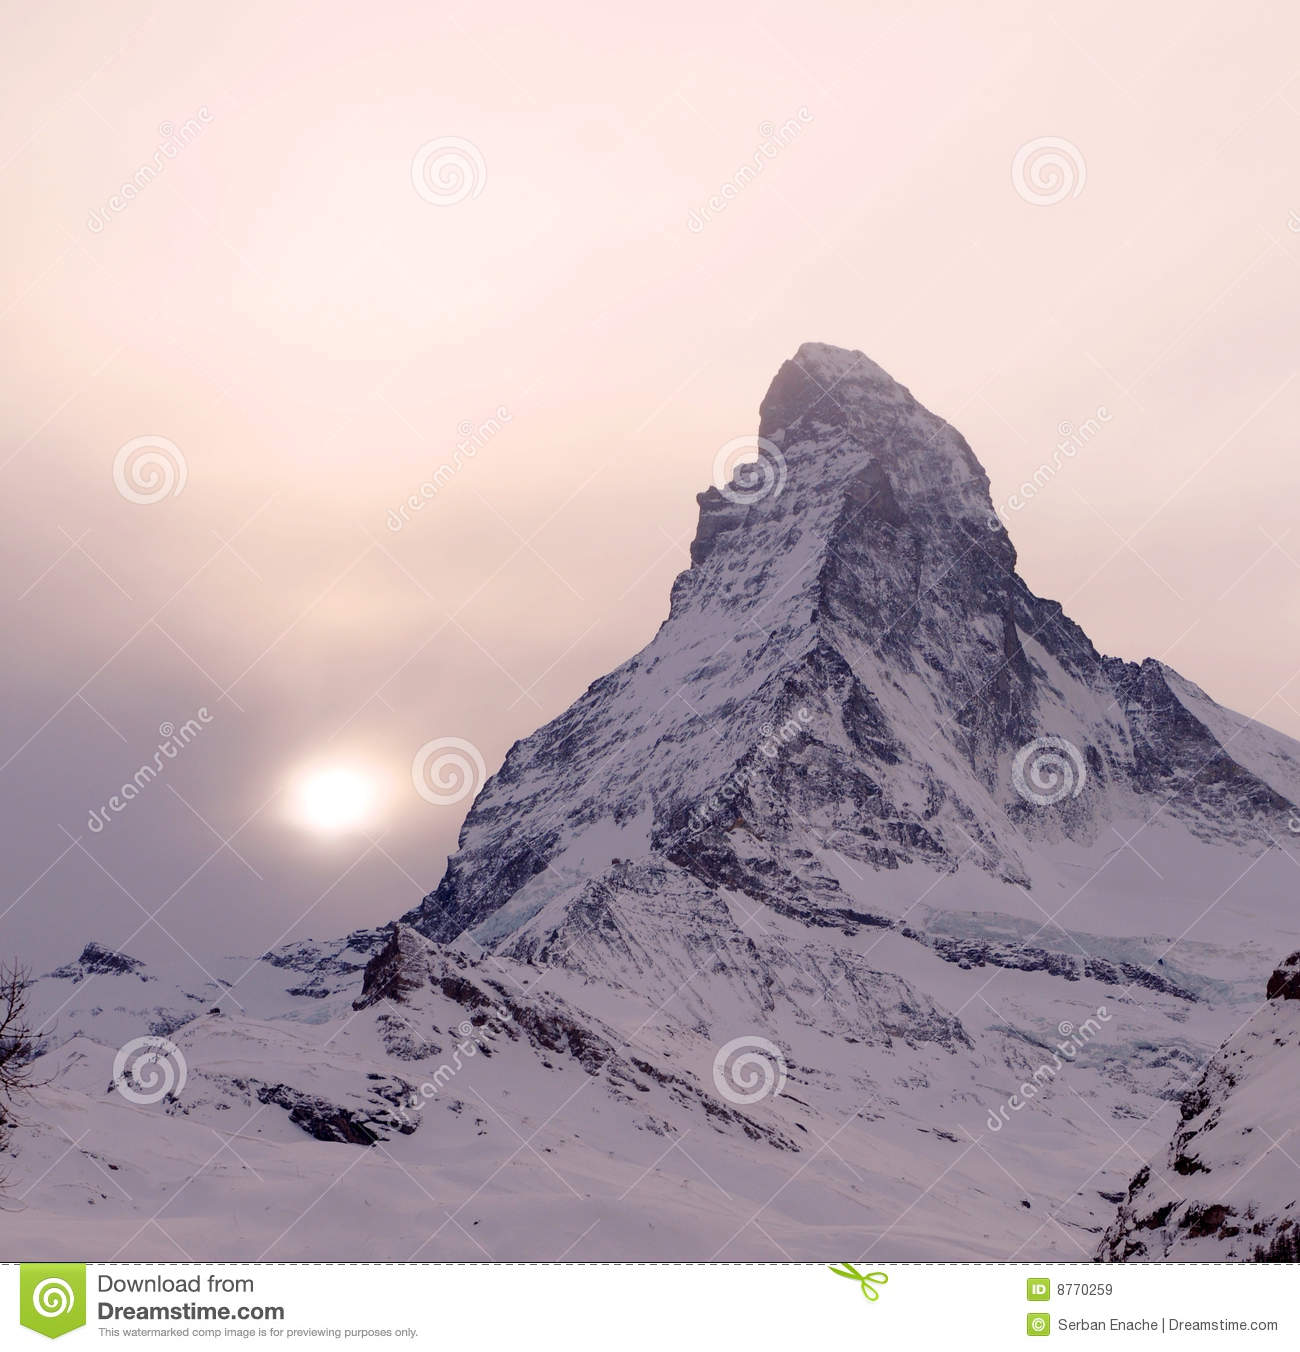 Sunset over Matterhorn